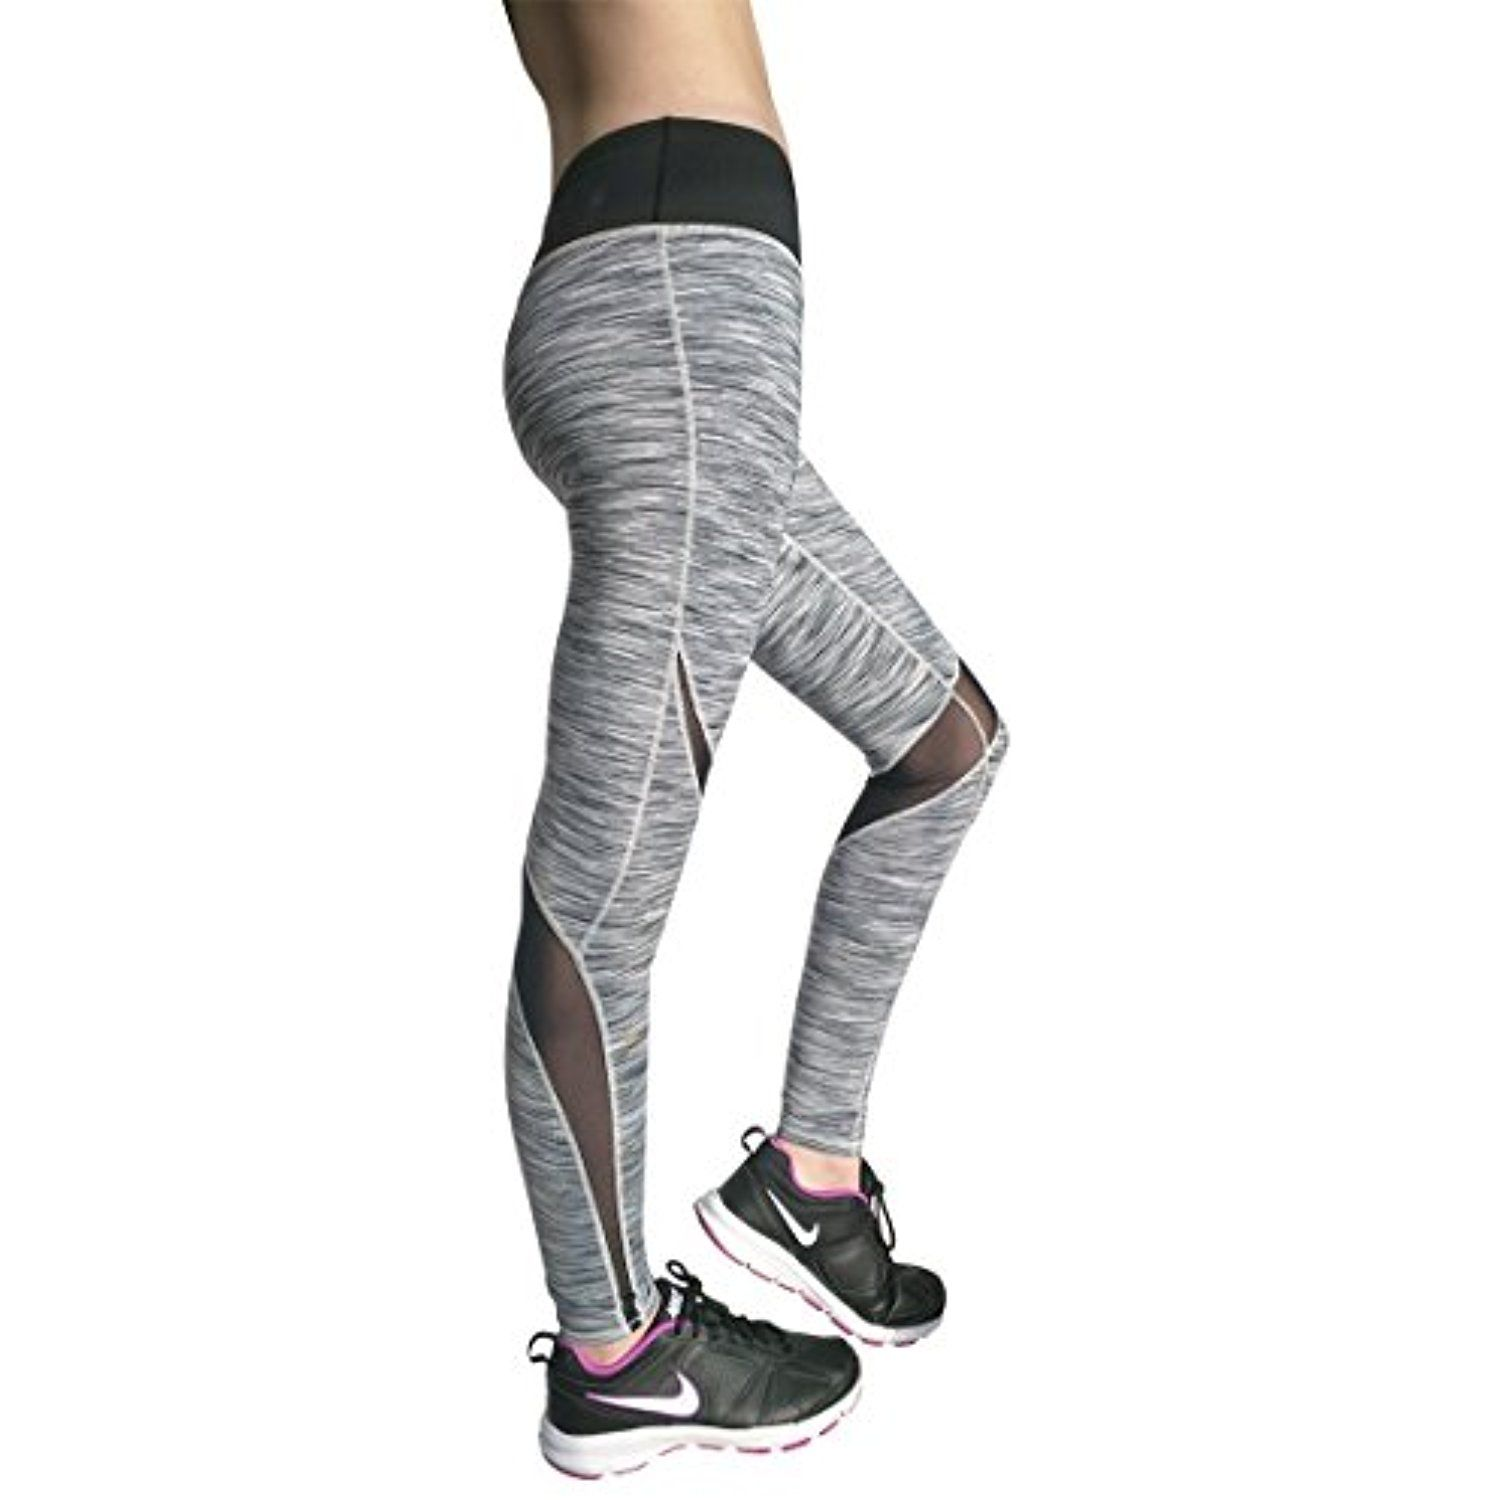 f61ec21b20976a DEUCE SPORTS POWERSWITCH Womens Grey Workout Pants | Slimming Yoga Legging  with High Waist | Skin Tight Fit Perfect for Yoga Athletics Running Tennis  * Be ...